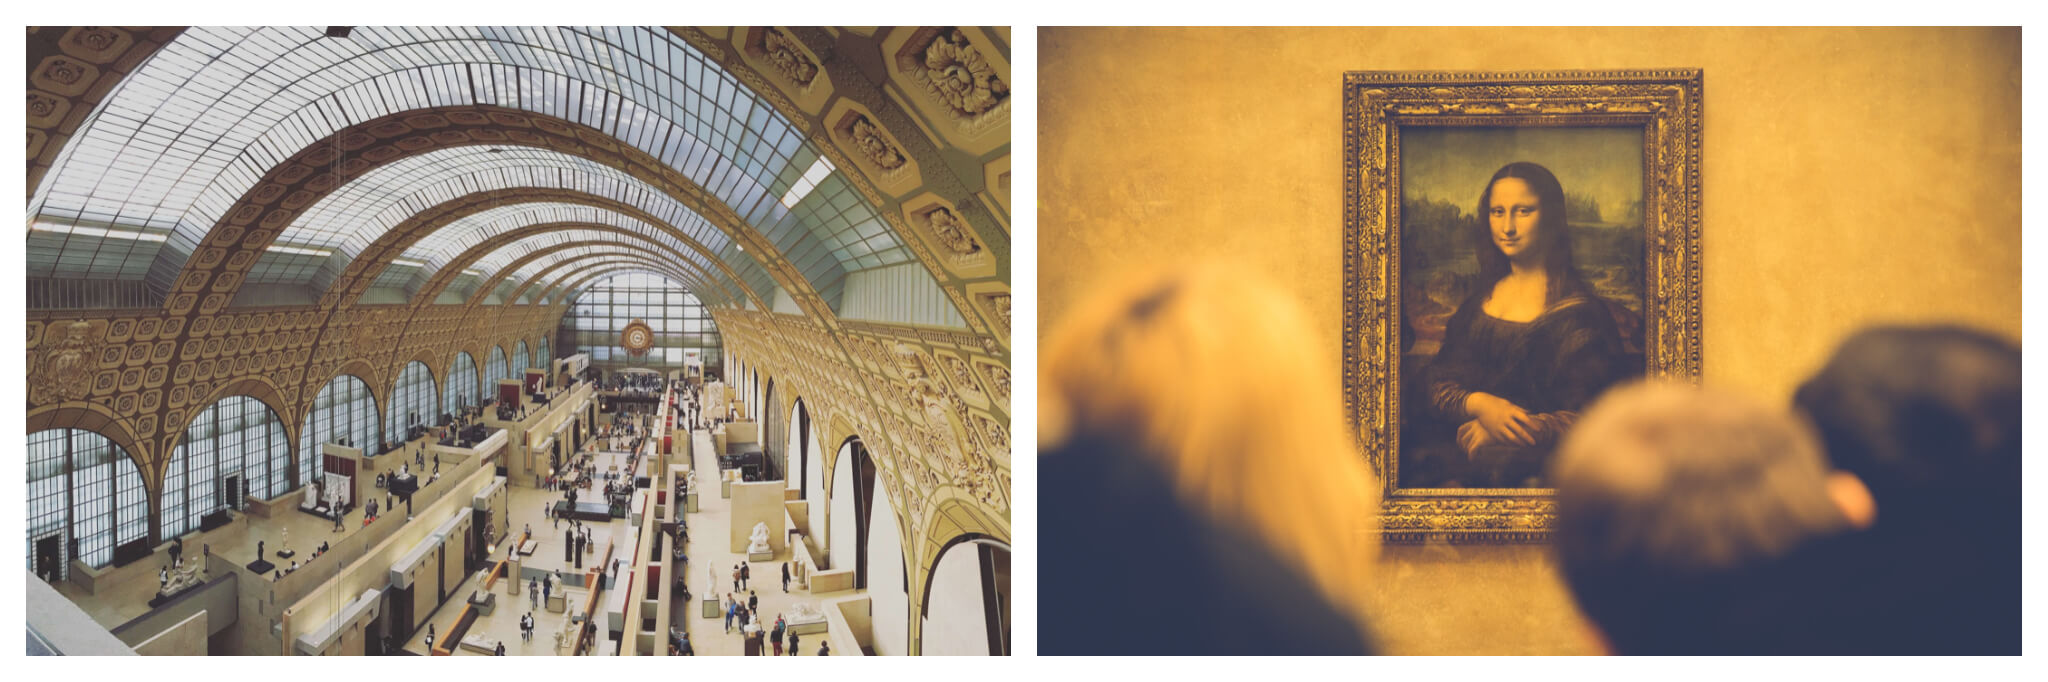 Left: the interior of D'Orsay Museum. It's a long room with an arched largely glass roof. The walls are engraved with a repetitive flower motif. The photo is taken from up high, looking down. There are sculptures along the first floor and the mezzanine above it, and there are lots of people. Right: Leonardo de Vinci's Mona Lisa painting hanging in the Louvre Museum. There are some people in front, looking at the painting. Their heads are out of focus.